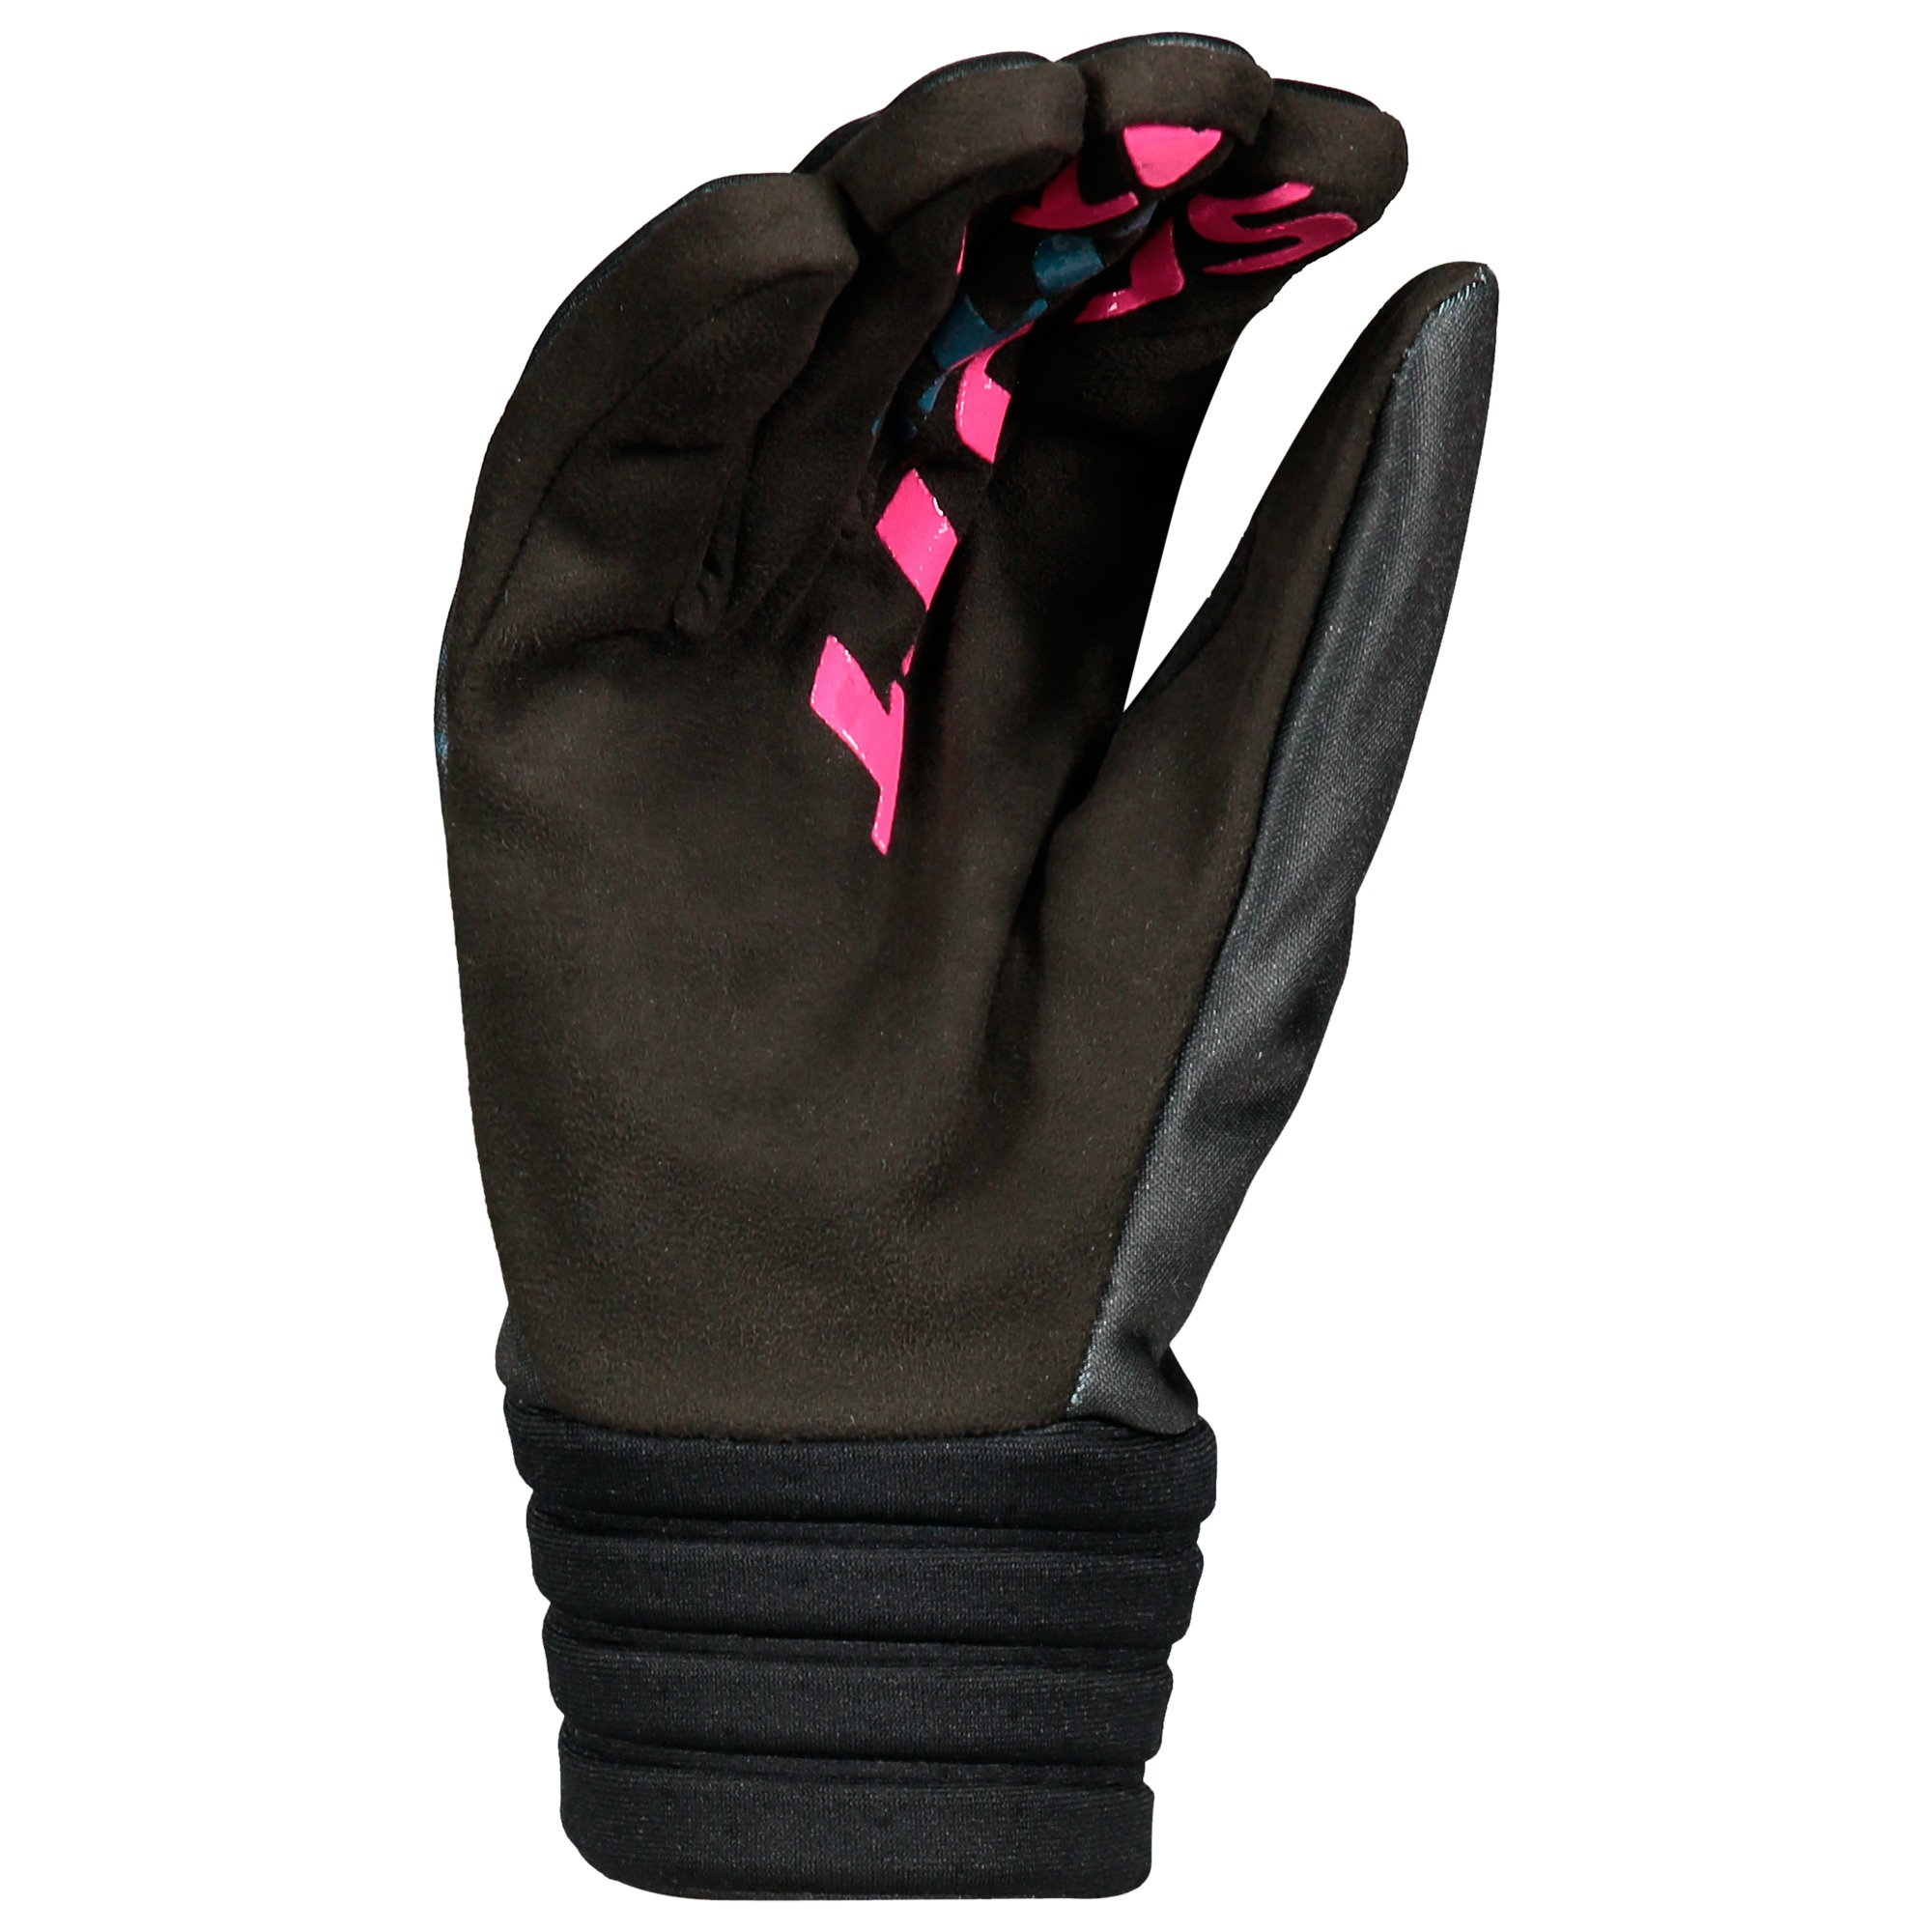 SCOTT 350 Insulated Handschuh